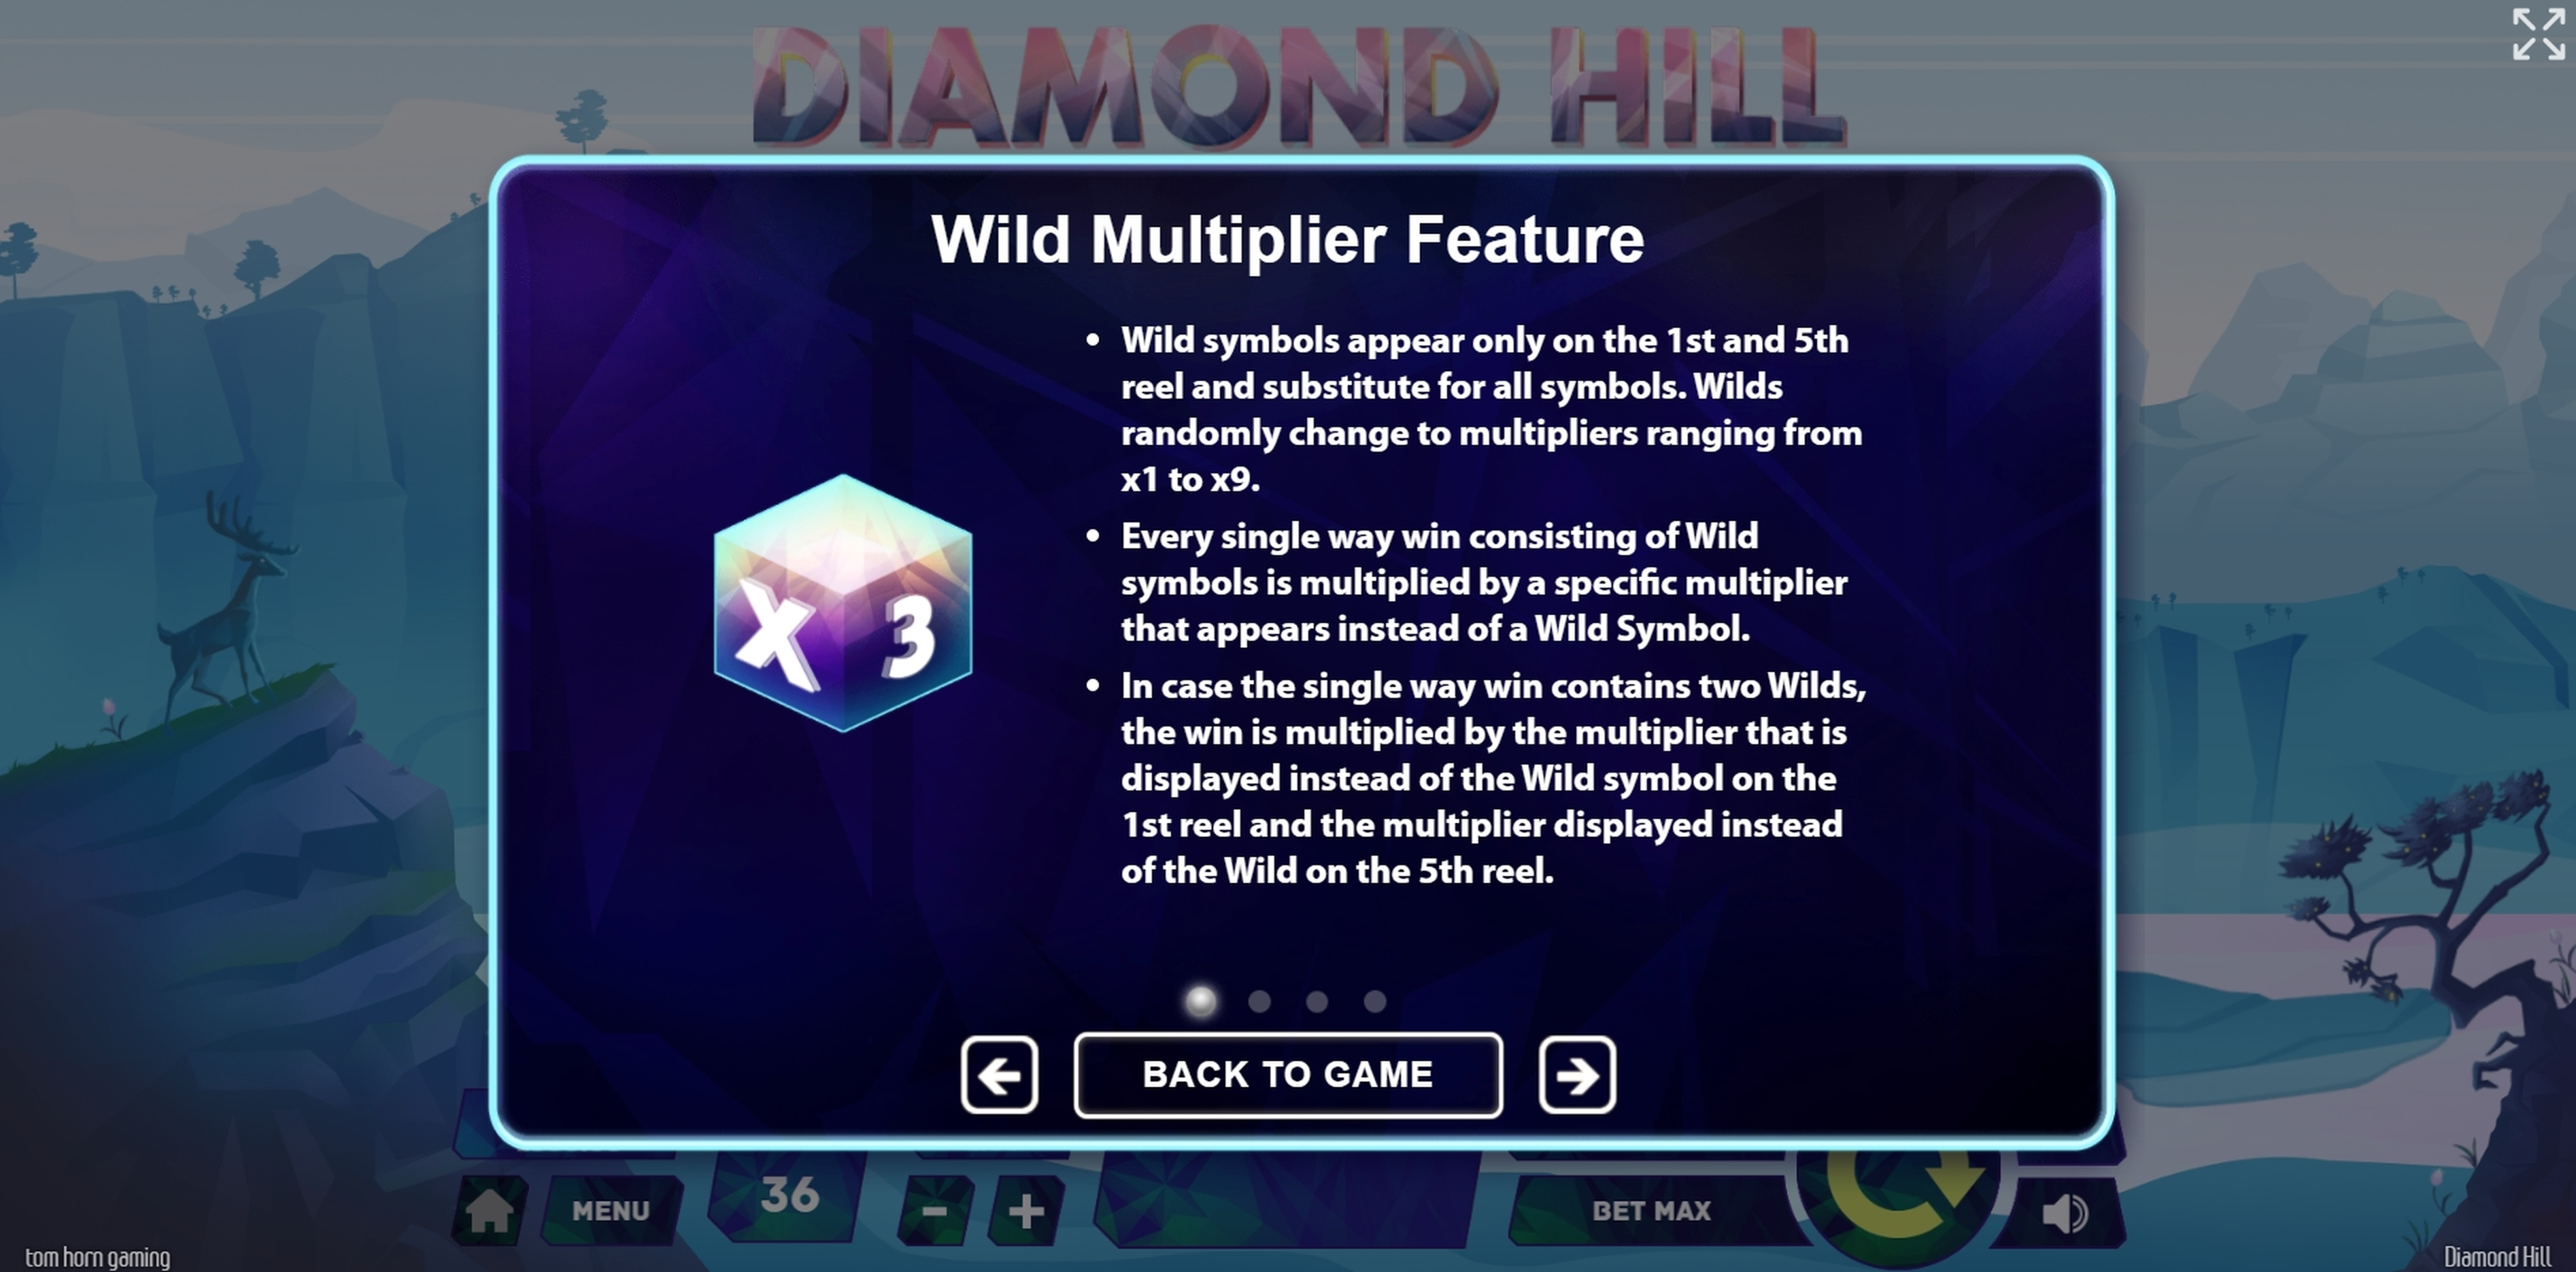 Info of Diamond Hill Slot Game by Tom Horn Gaming